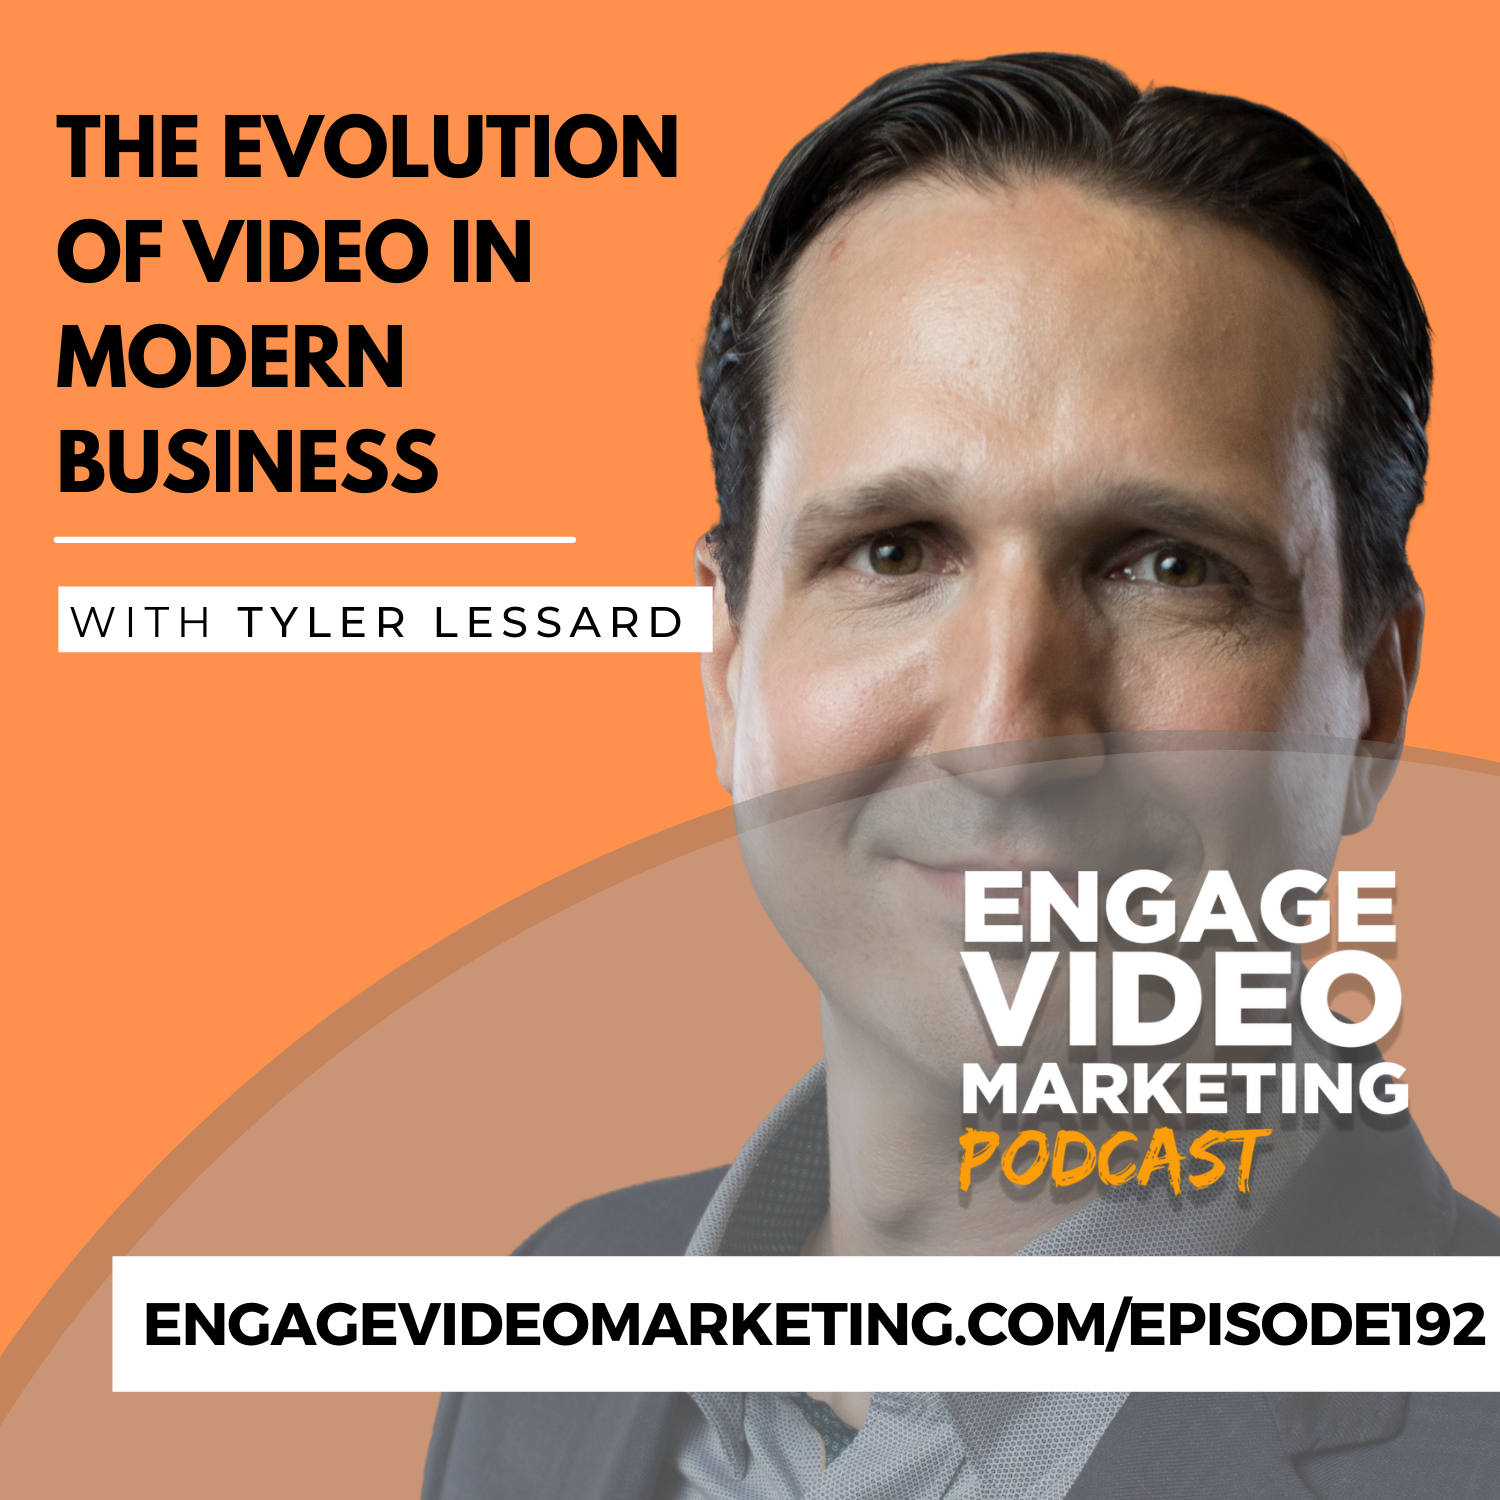 The Evolution of Video in Modern Business with Tyler Lessard